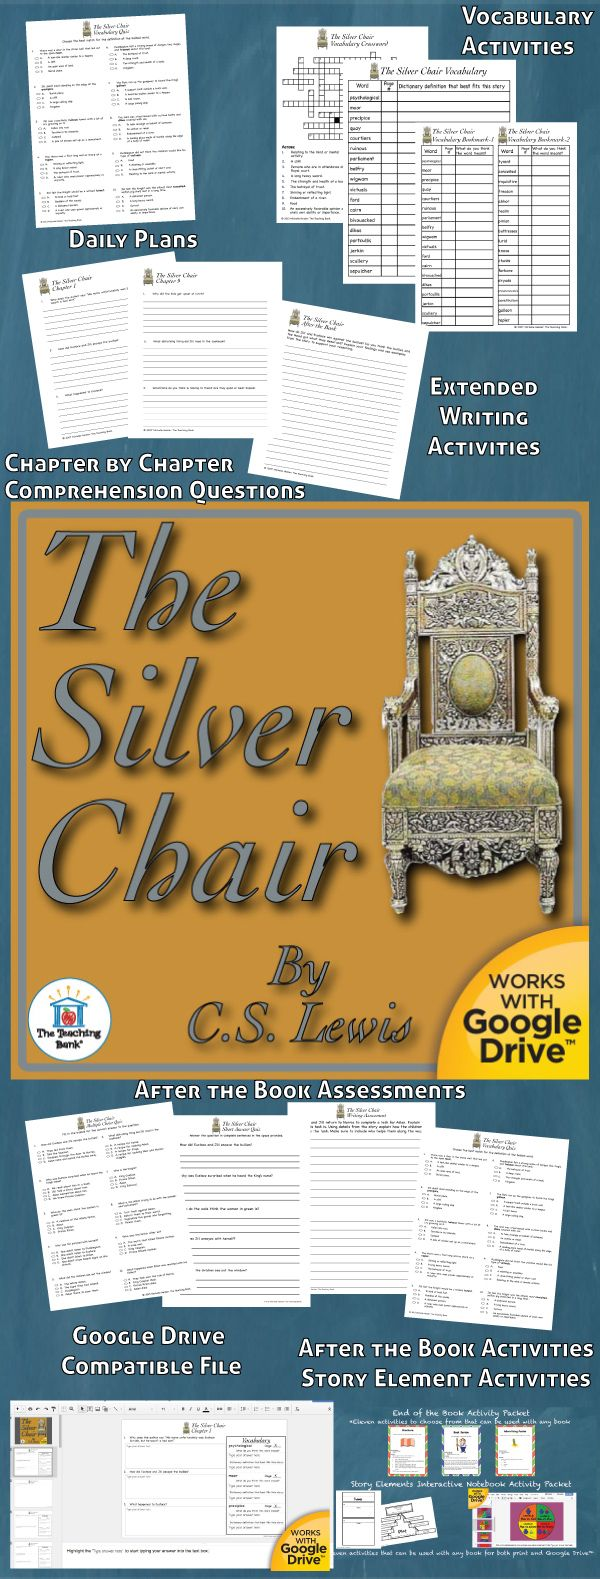 The narnia covers book 4 the silver chair - The Silver Chair Novel Study Is A Common Core Standards Aligned Book Unit To Be Used With The Silver Chair Book 6 In The Chronicles Of Narnia Series By C